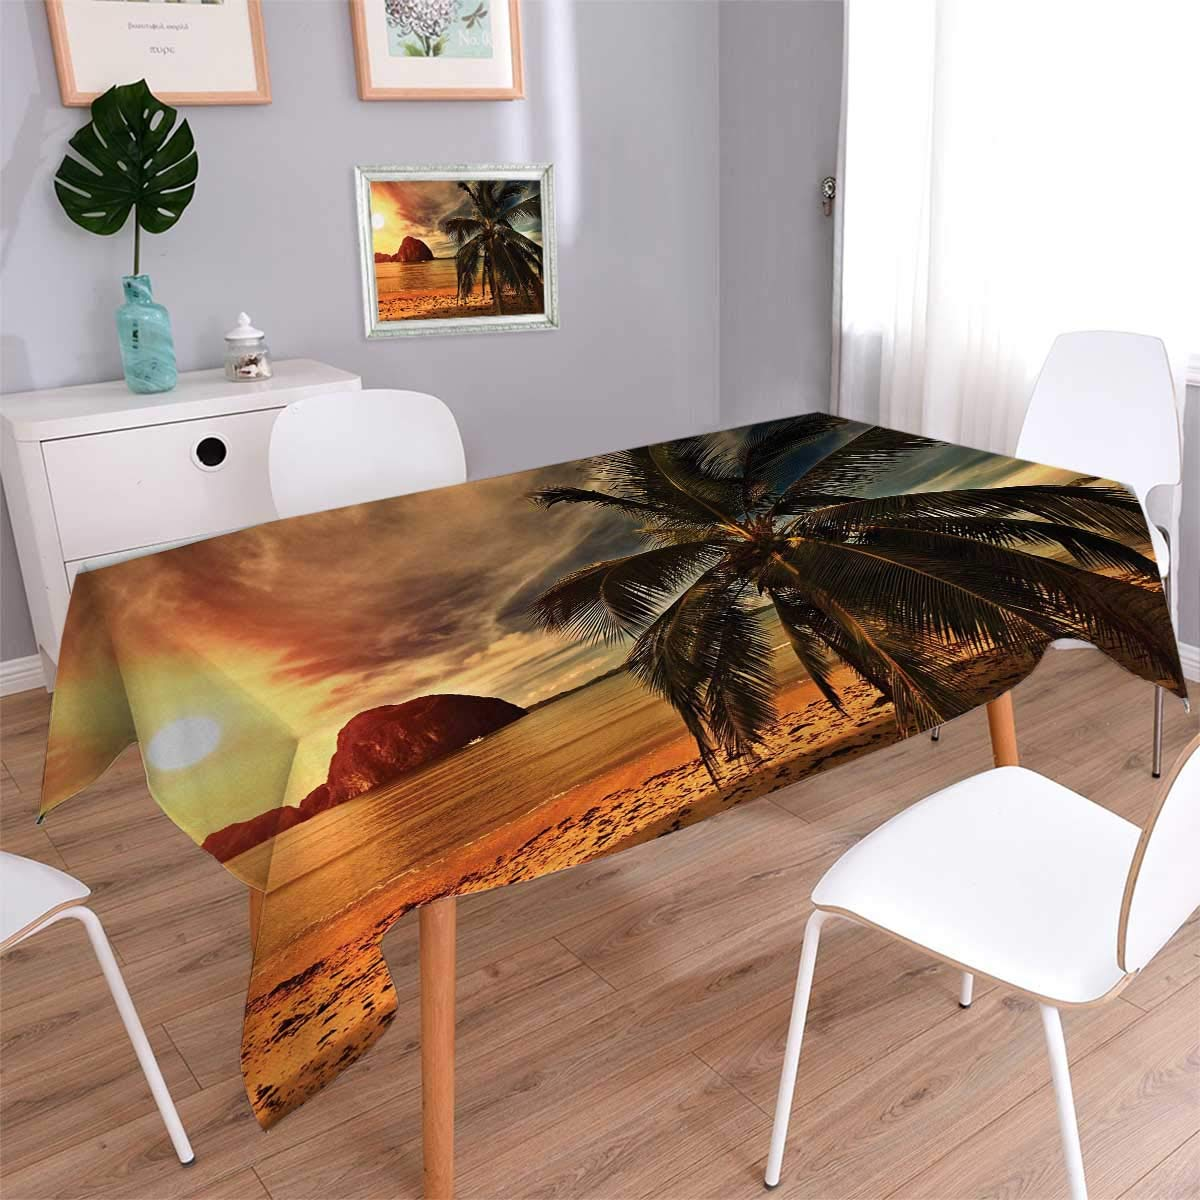 Anmaseven Ocean Rectangle Customized Tablecloth Havana Beach Sunny Tropics Mountains Rocks and Coconut Palm Trees Stain Resistant Wrinkle Tablecloth Orange Light Brown Dark Green Size: W70 x L104